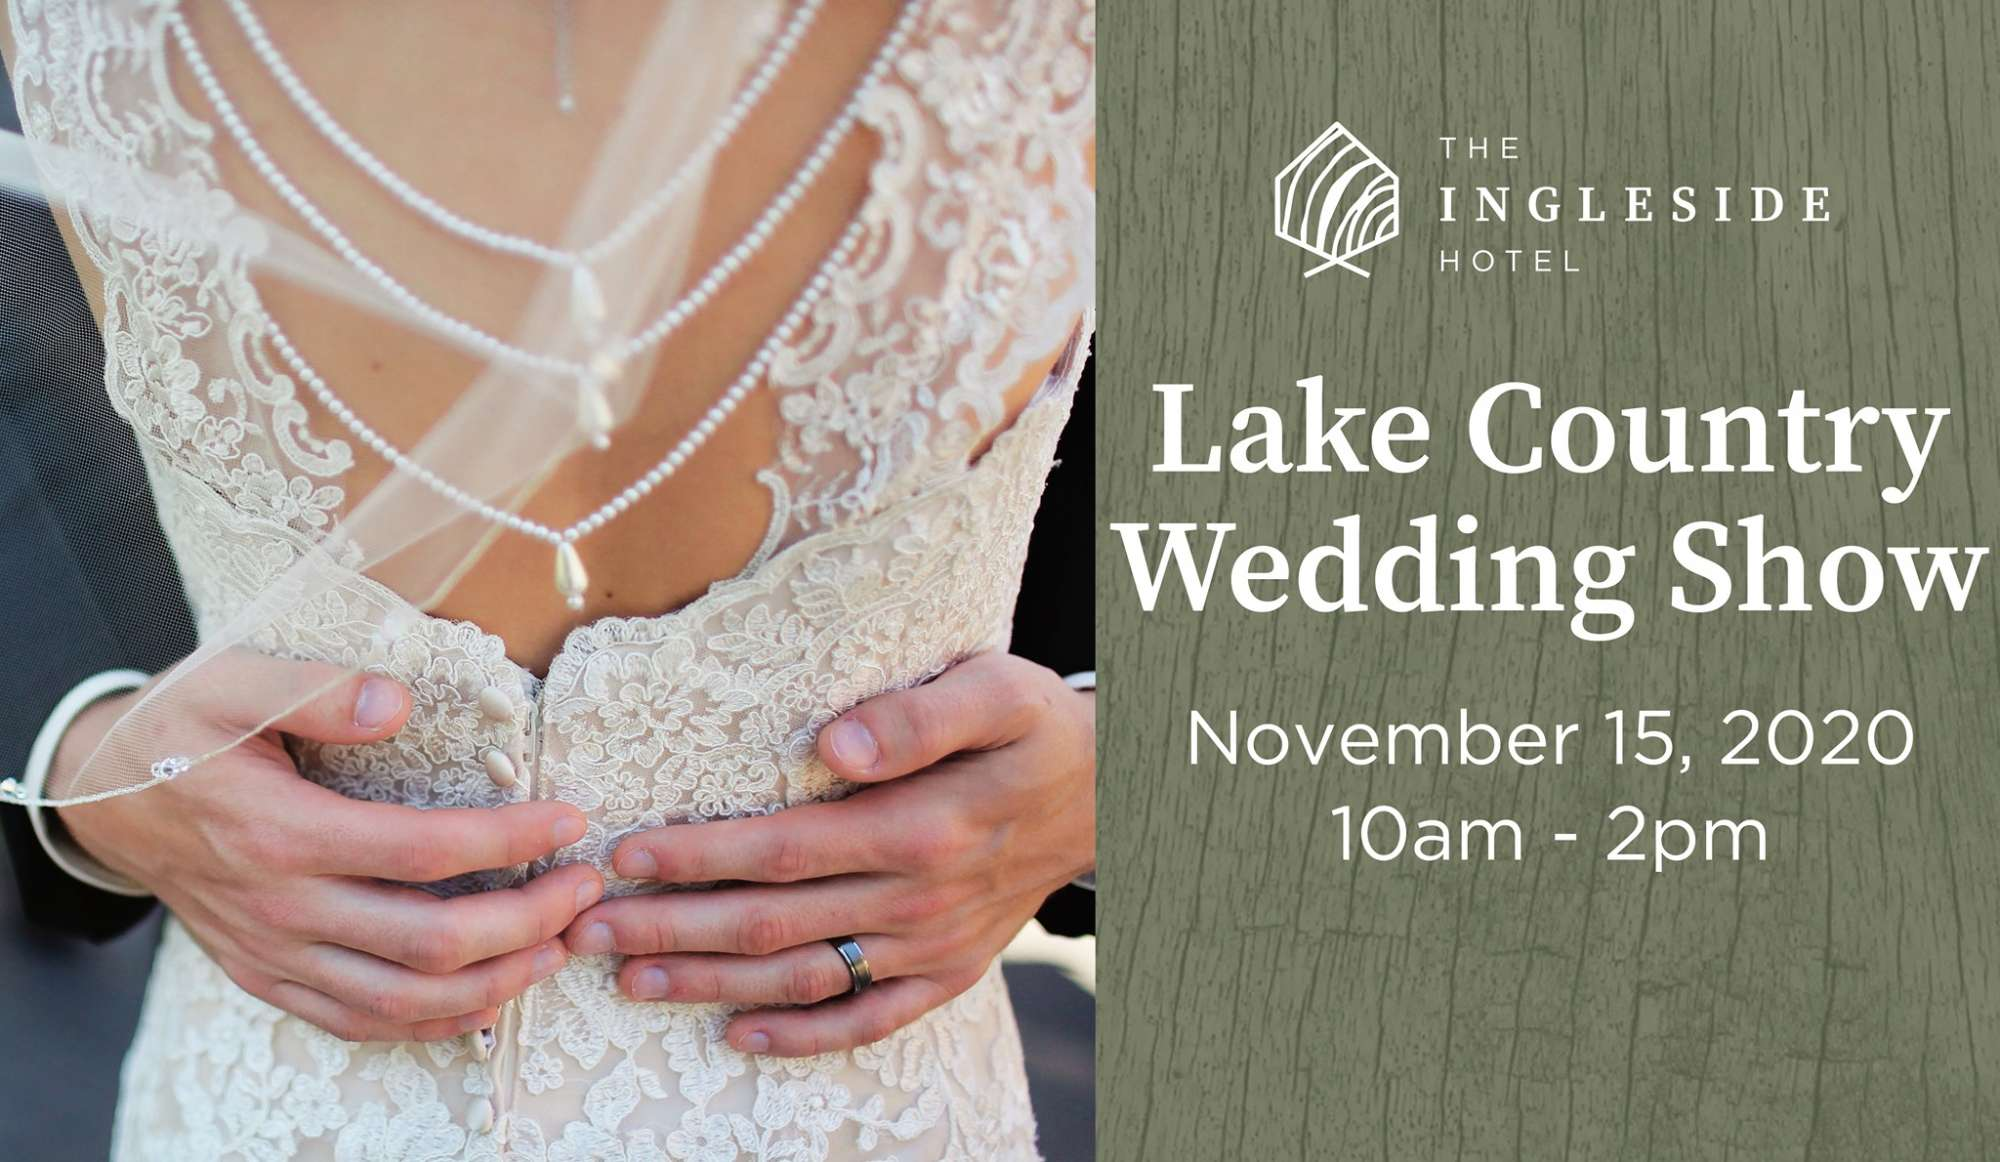 the 2020 Lake Country Wedding Show at the Ingleside Hotel